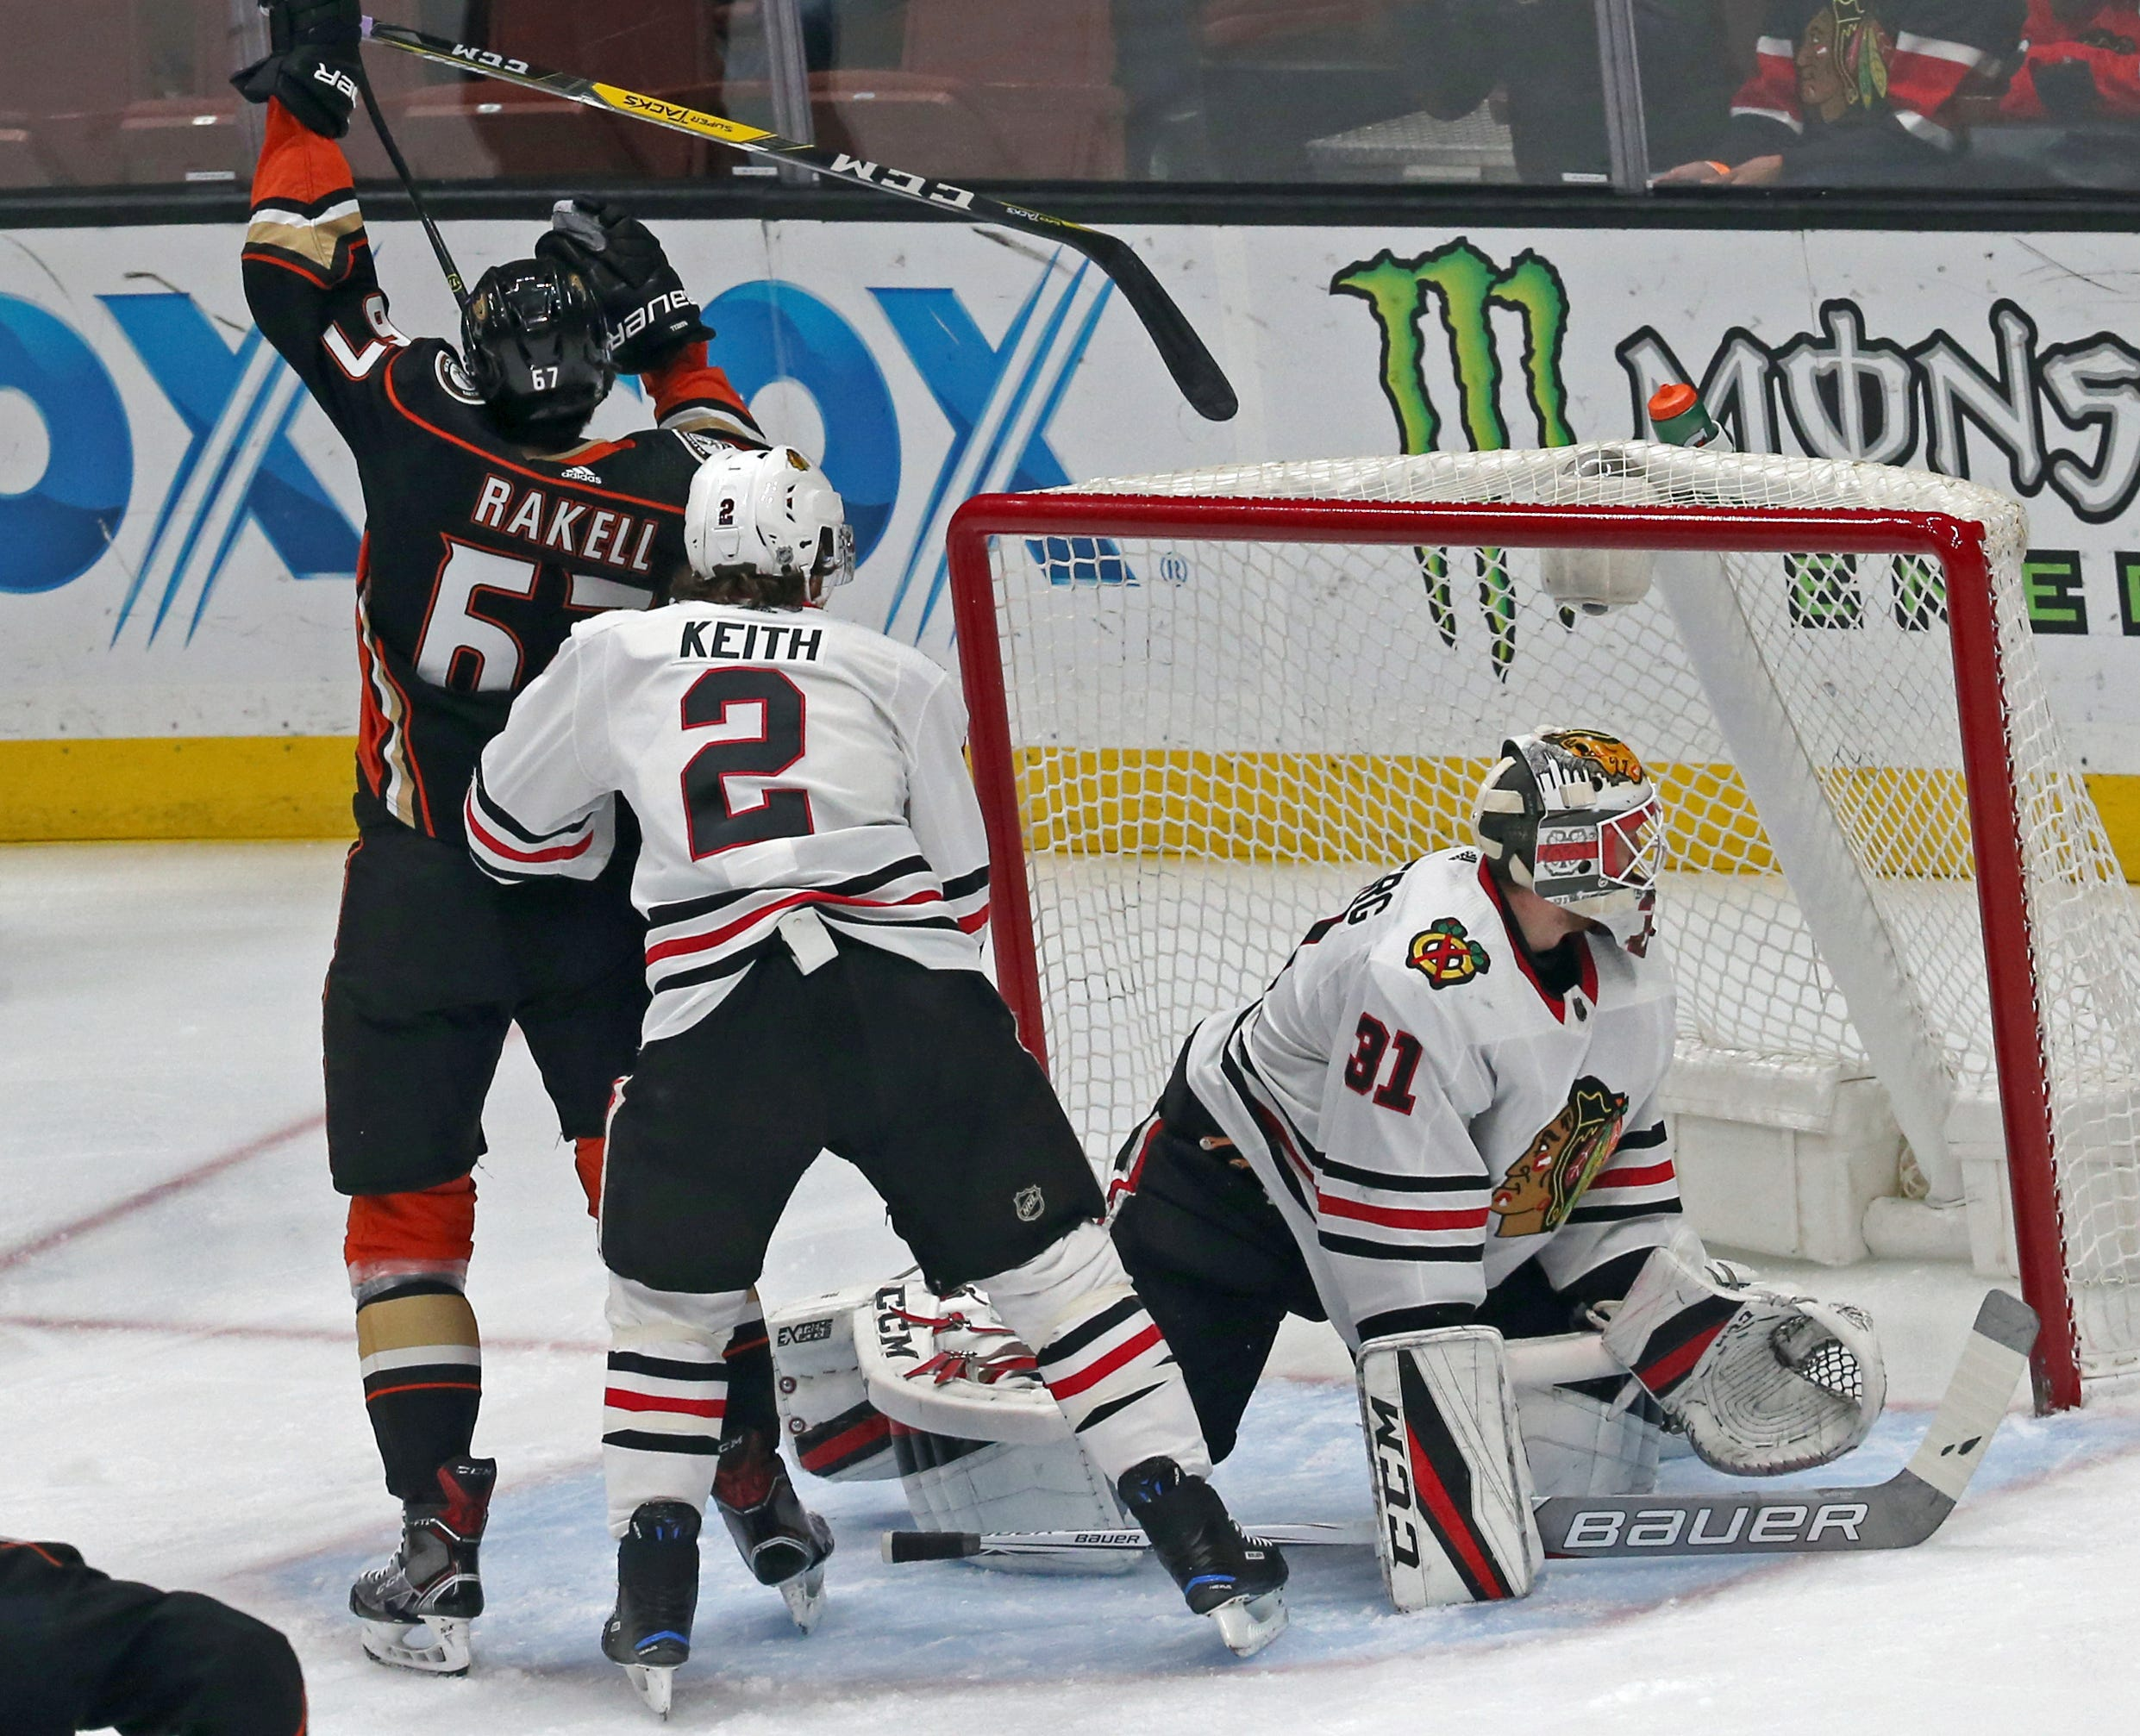 Ducks rout Blackhawks, move into 3rd in Pacific